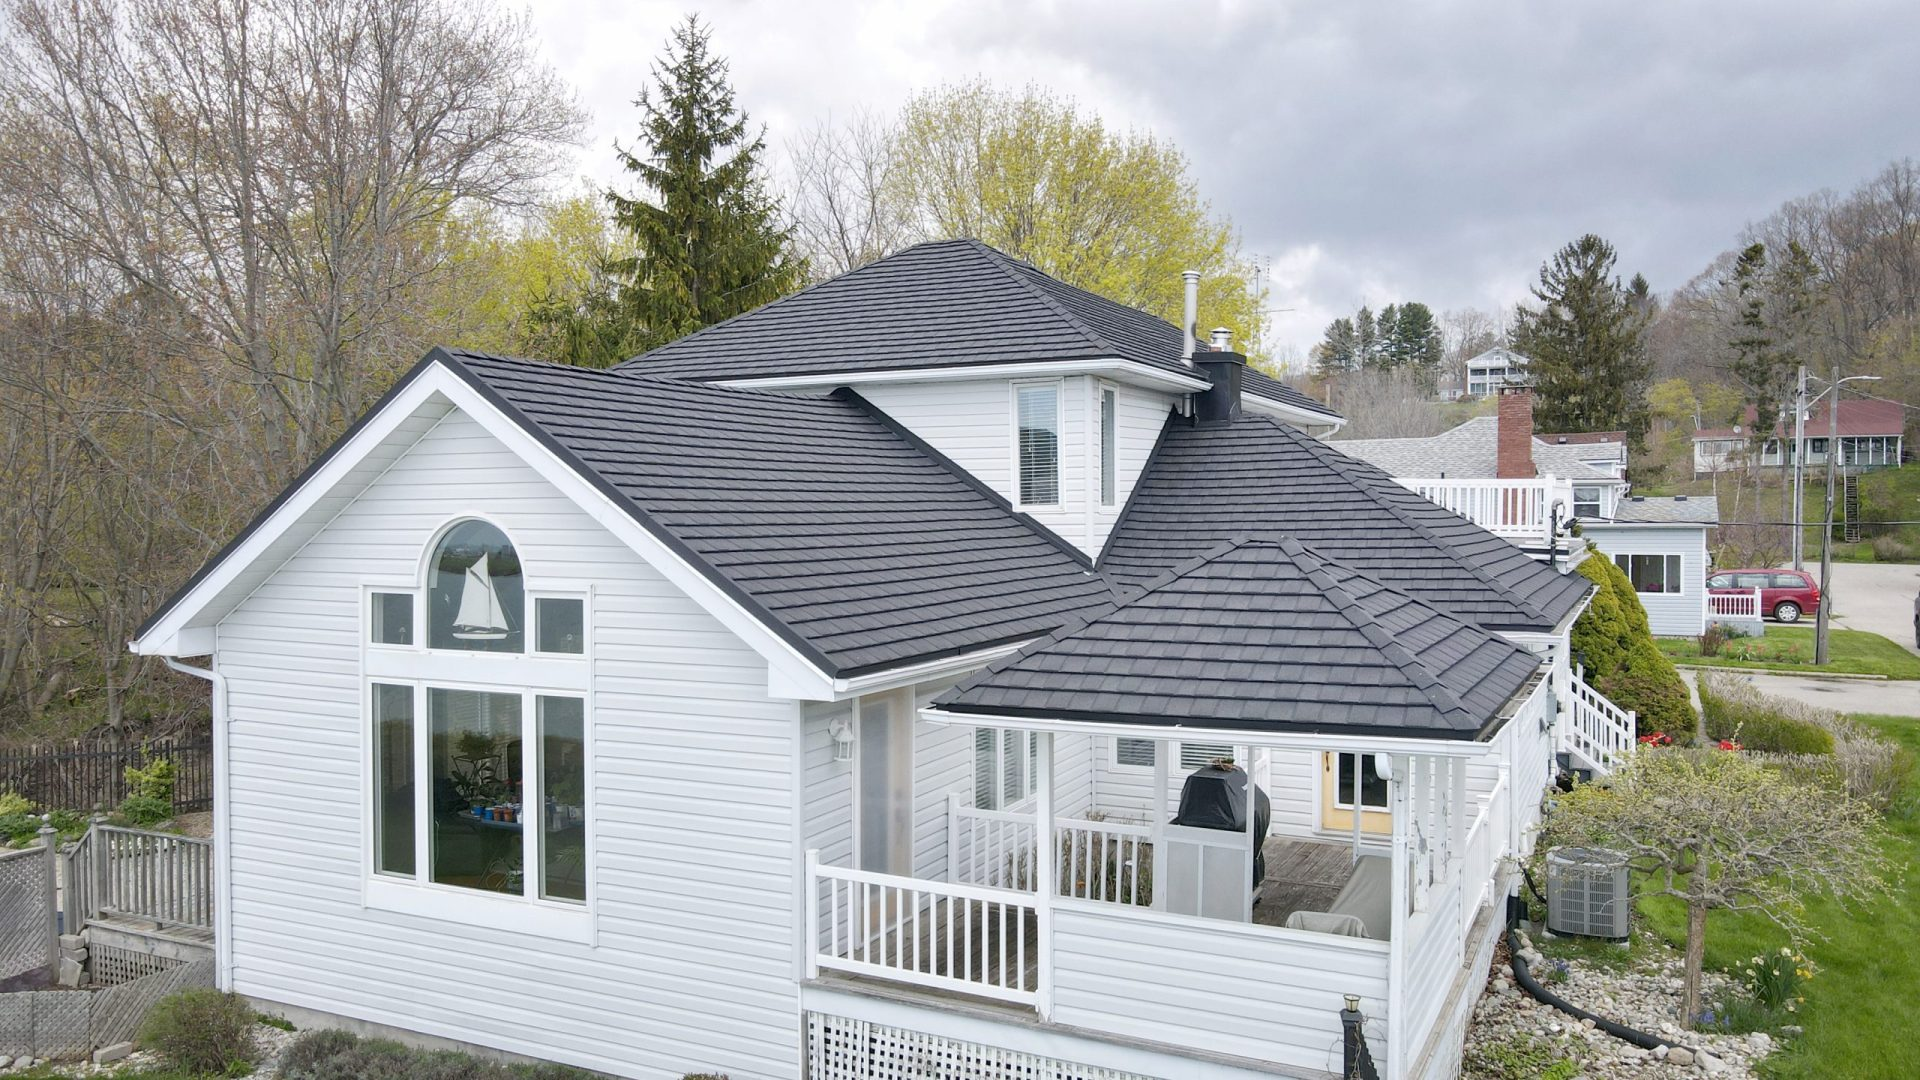 White house with grey metal roof from Metal Roof Outlet with trees and homes in the background